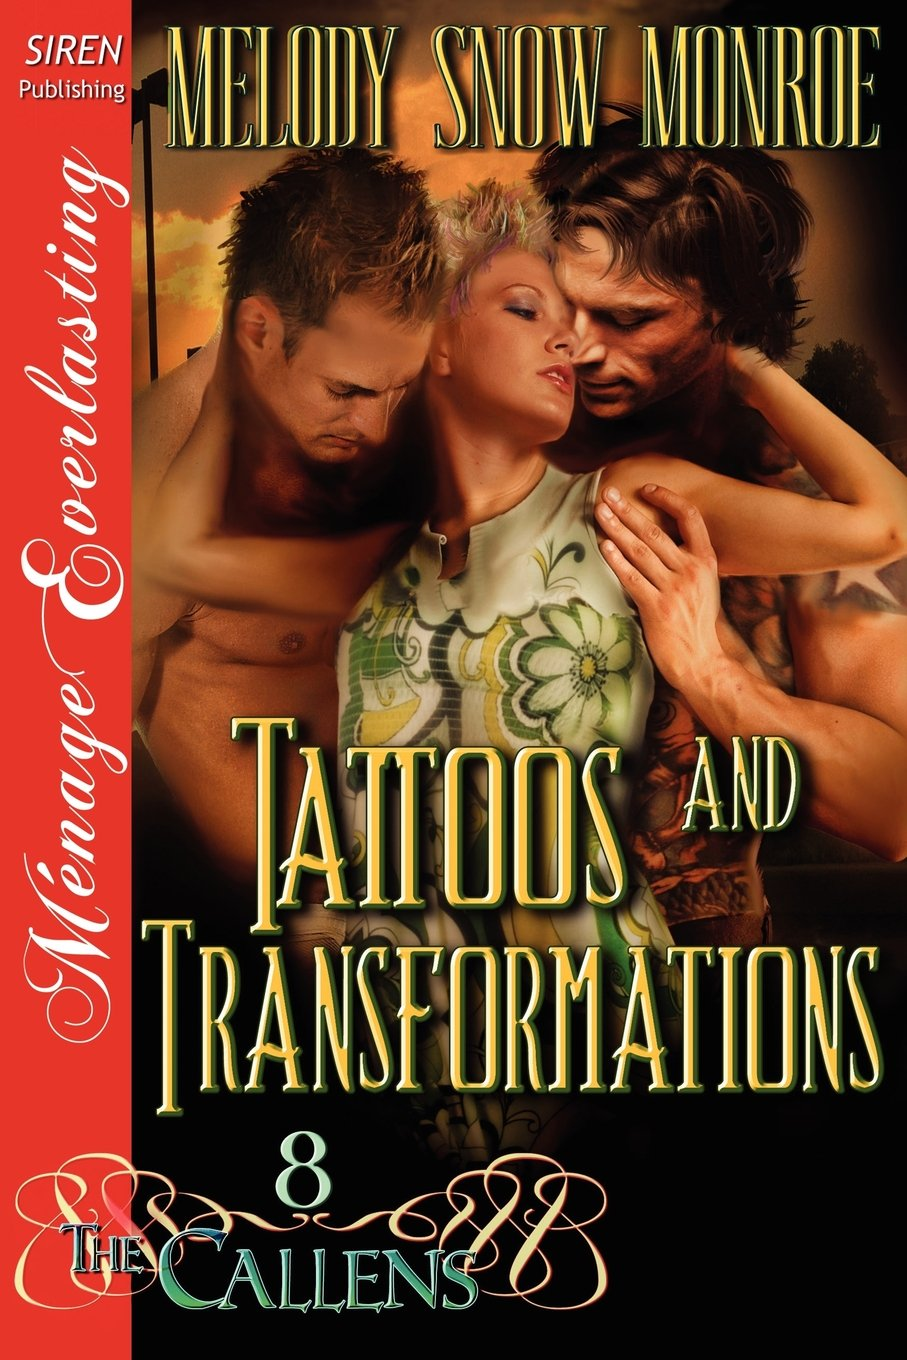 Tattoos and Transformations [The Callens 8] (Siren Publishing Menage Everlasting) PDF